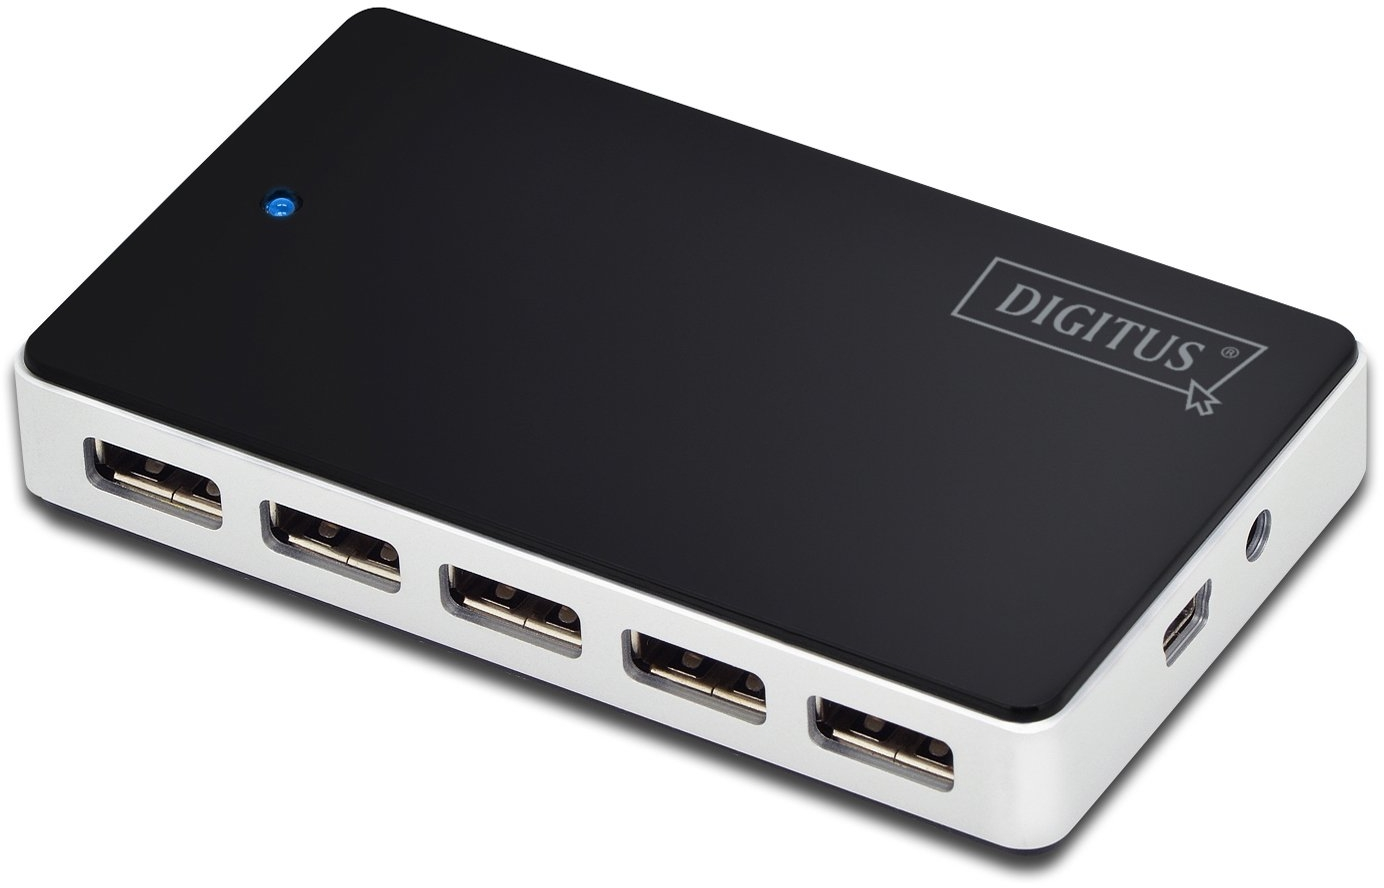 Digitus DA-70229 USB 2.0 Hub, 10-Port